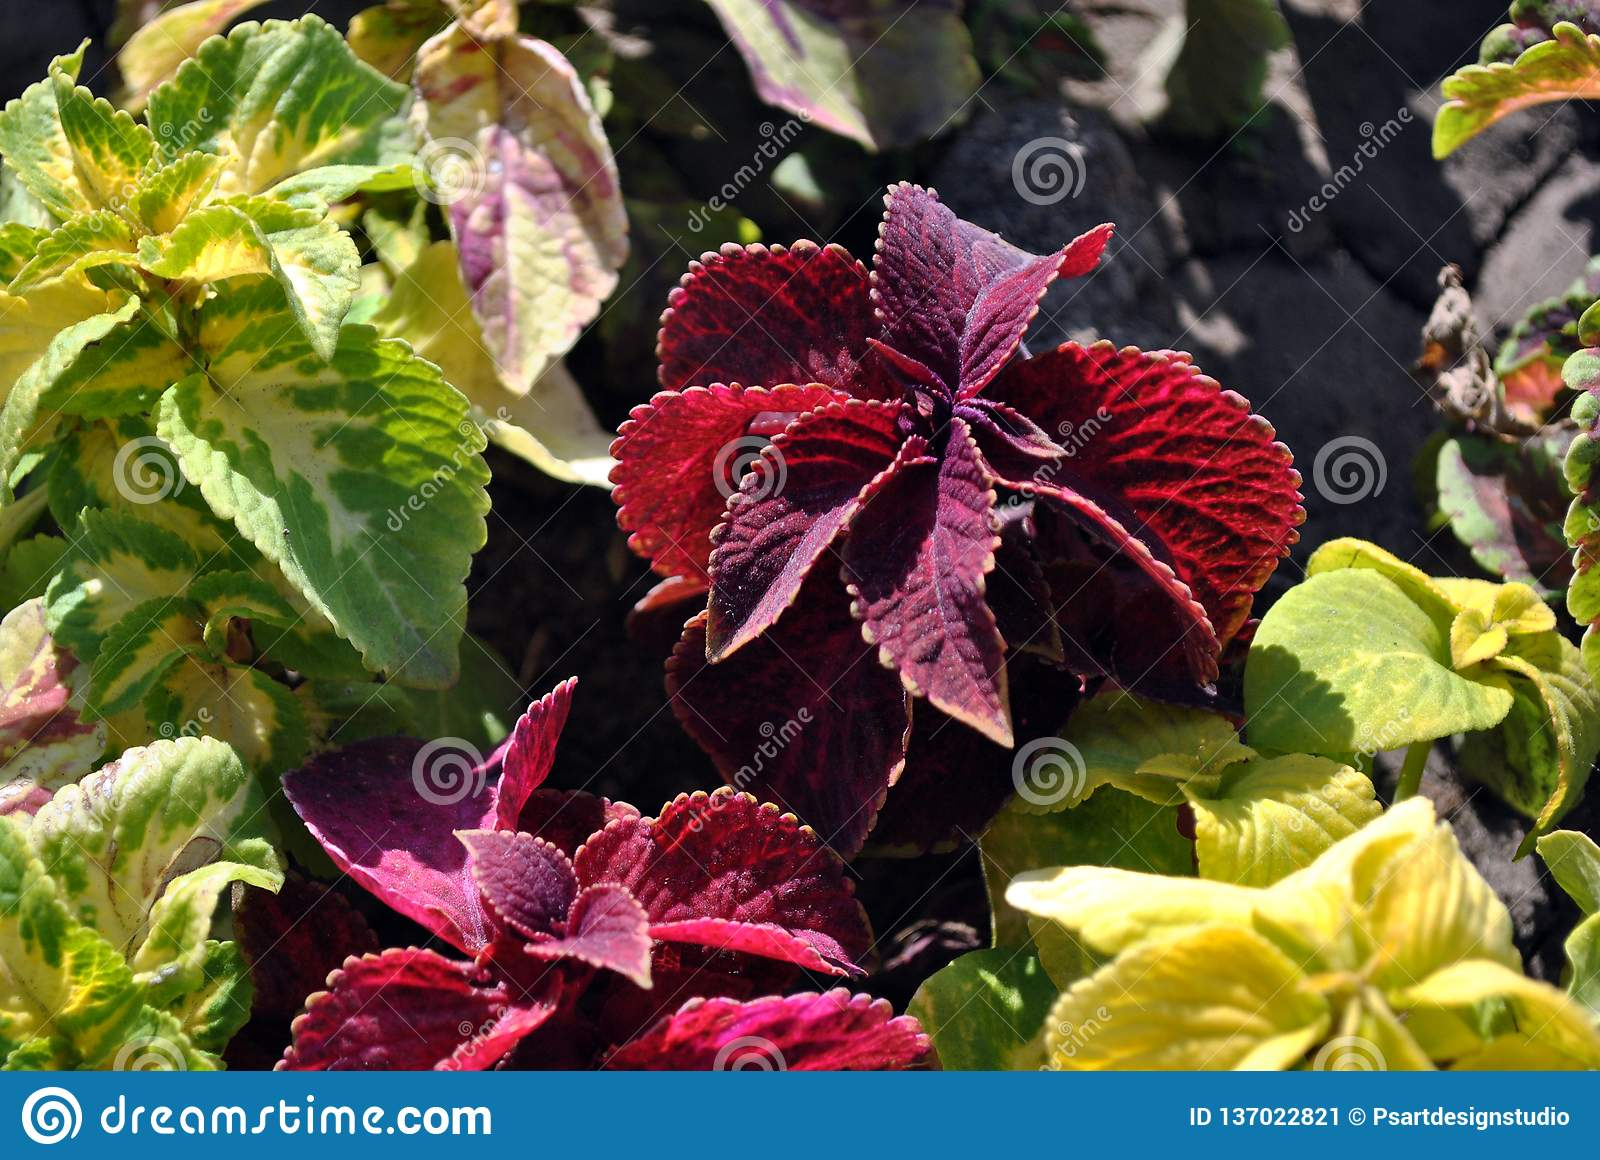 Colorful green and red leaves in flower bed